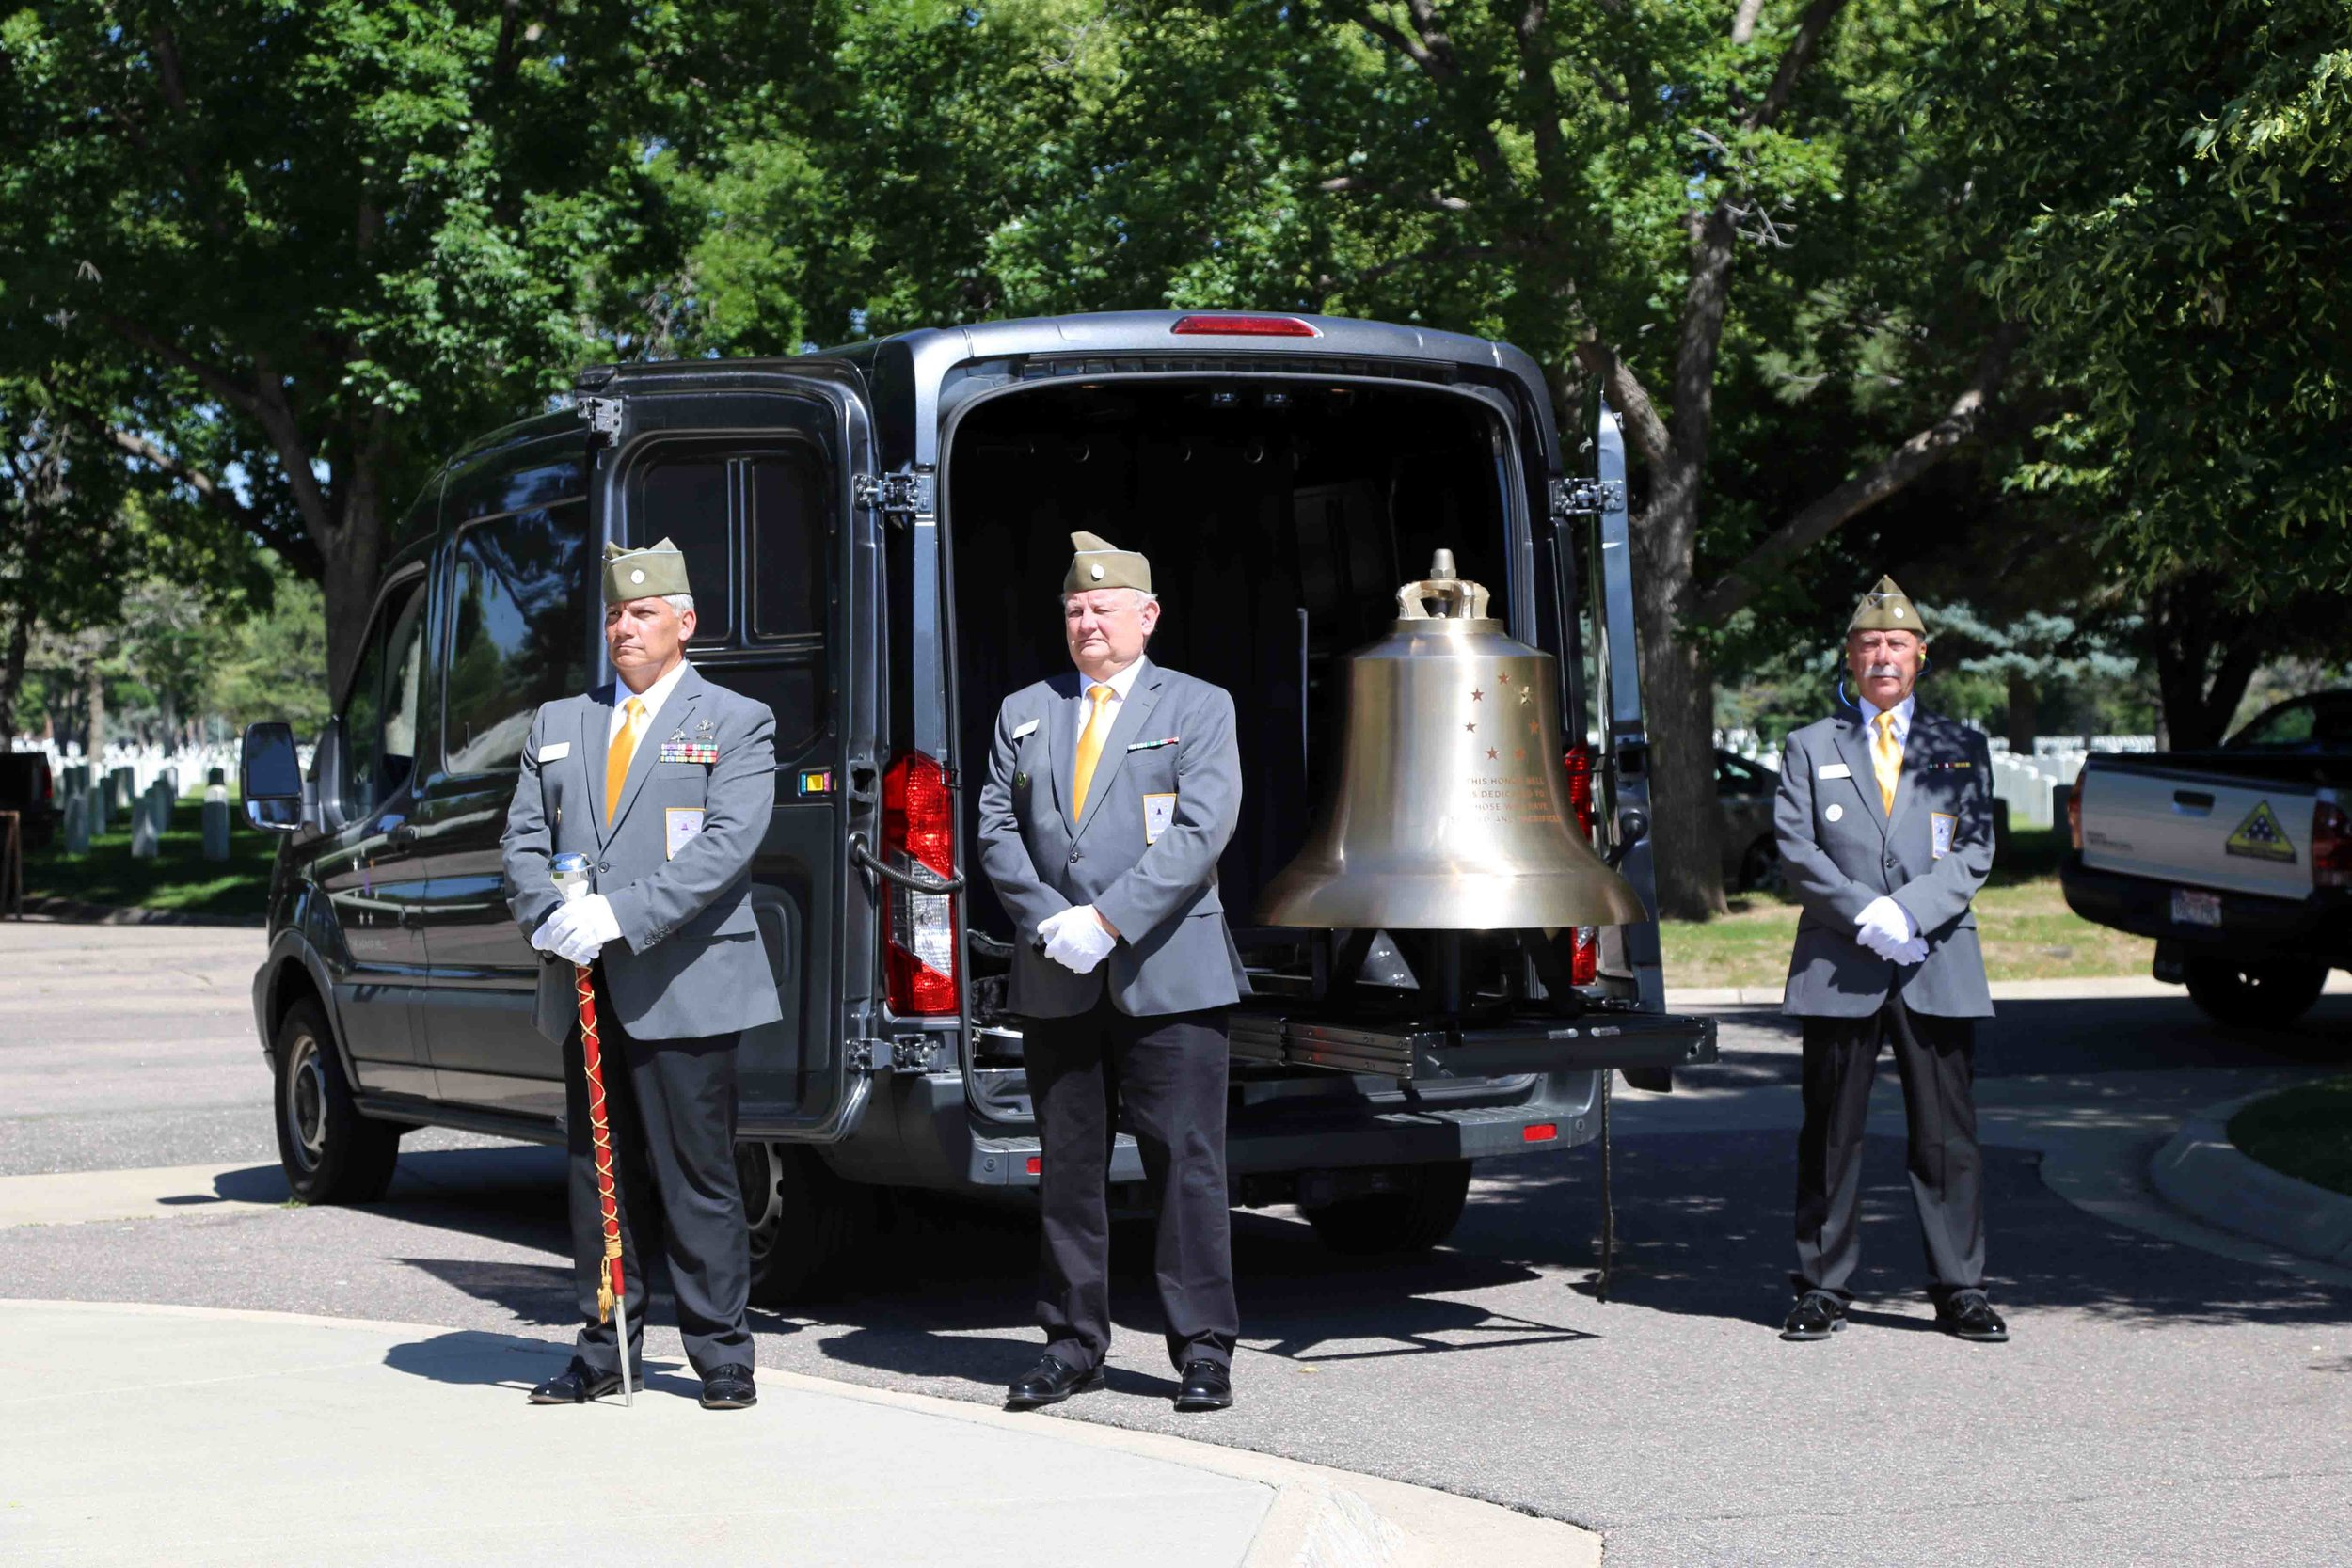 The Bell Guard standing ready to render honors. Photo courtesy of Erick Stowe.